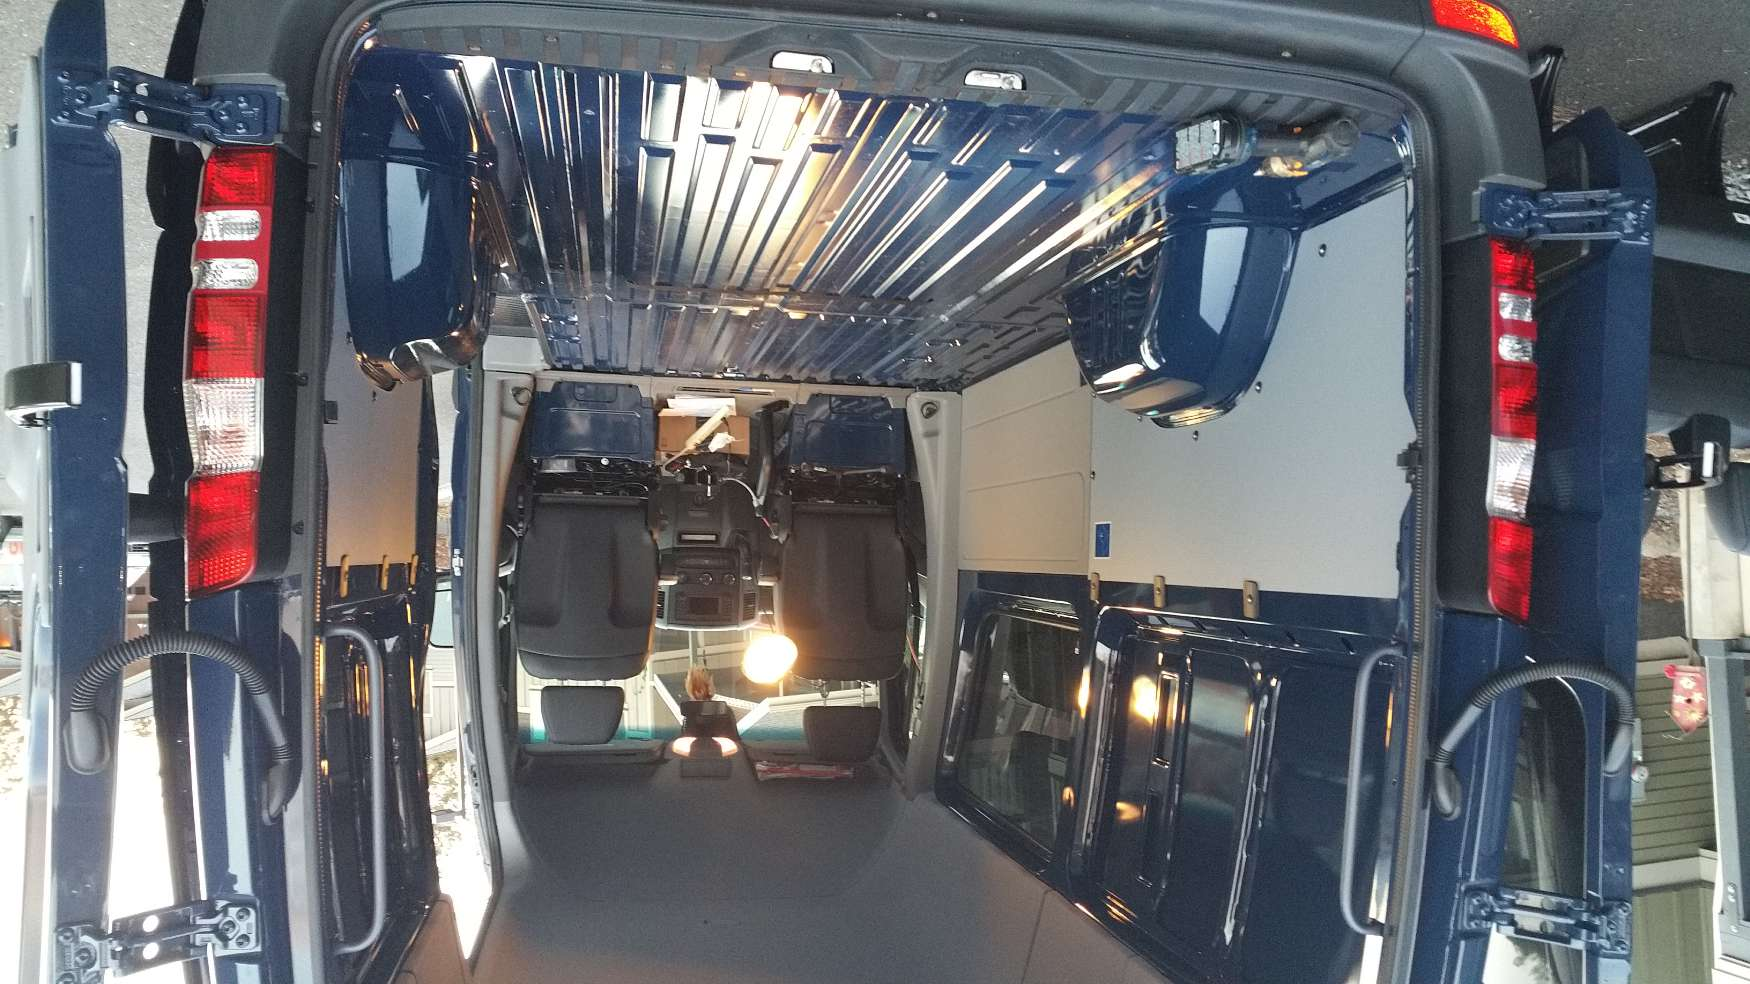 Converting a Sprinter Van to a Camper: Moving the Back Seat